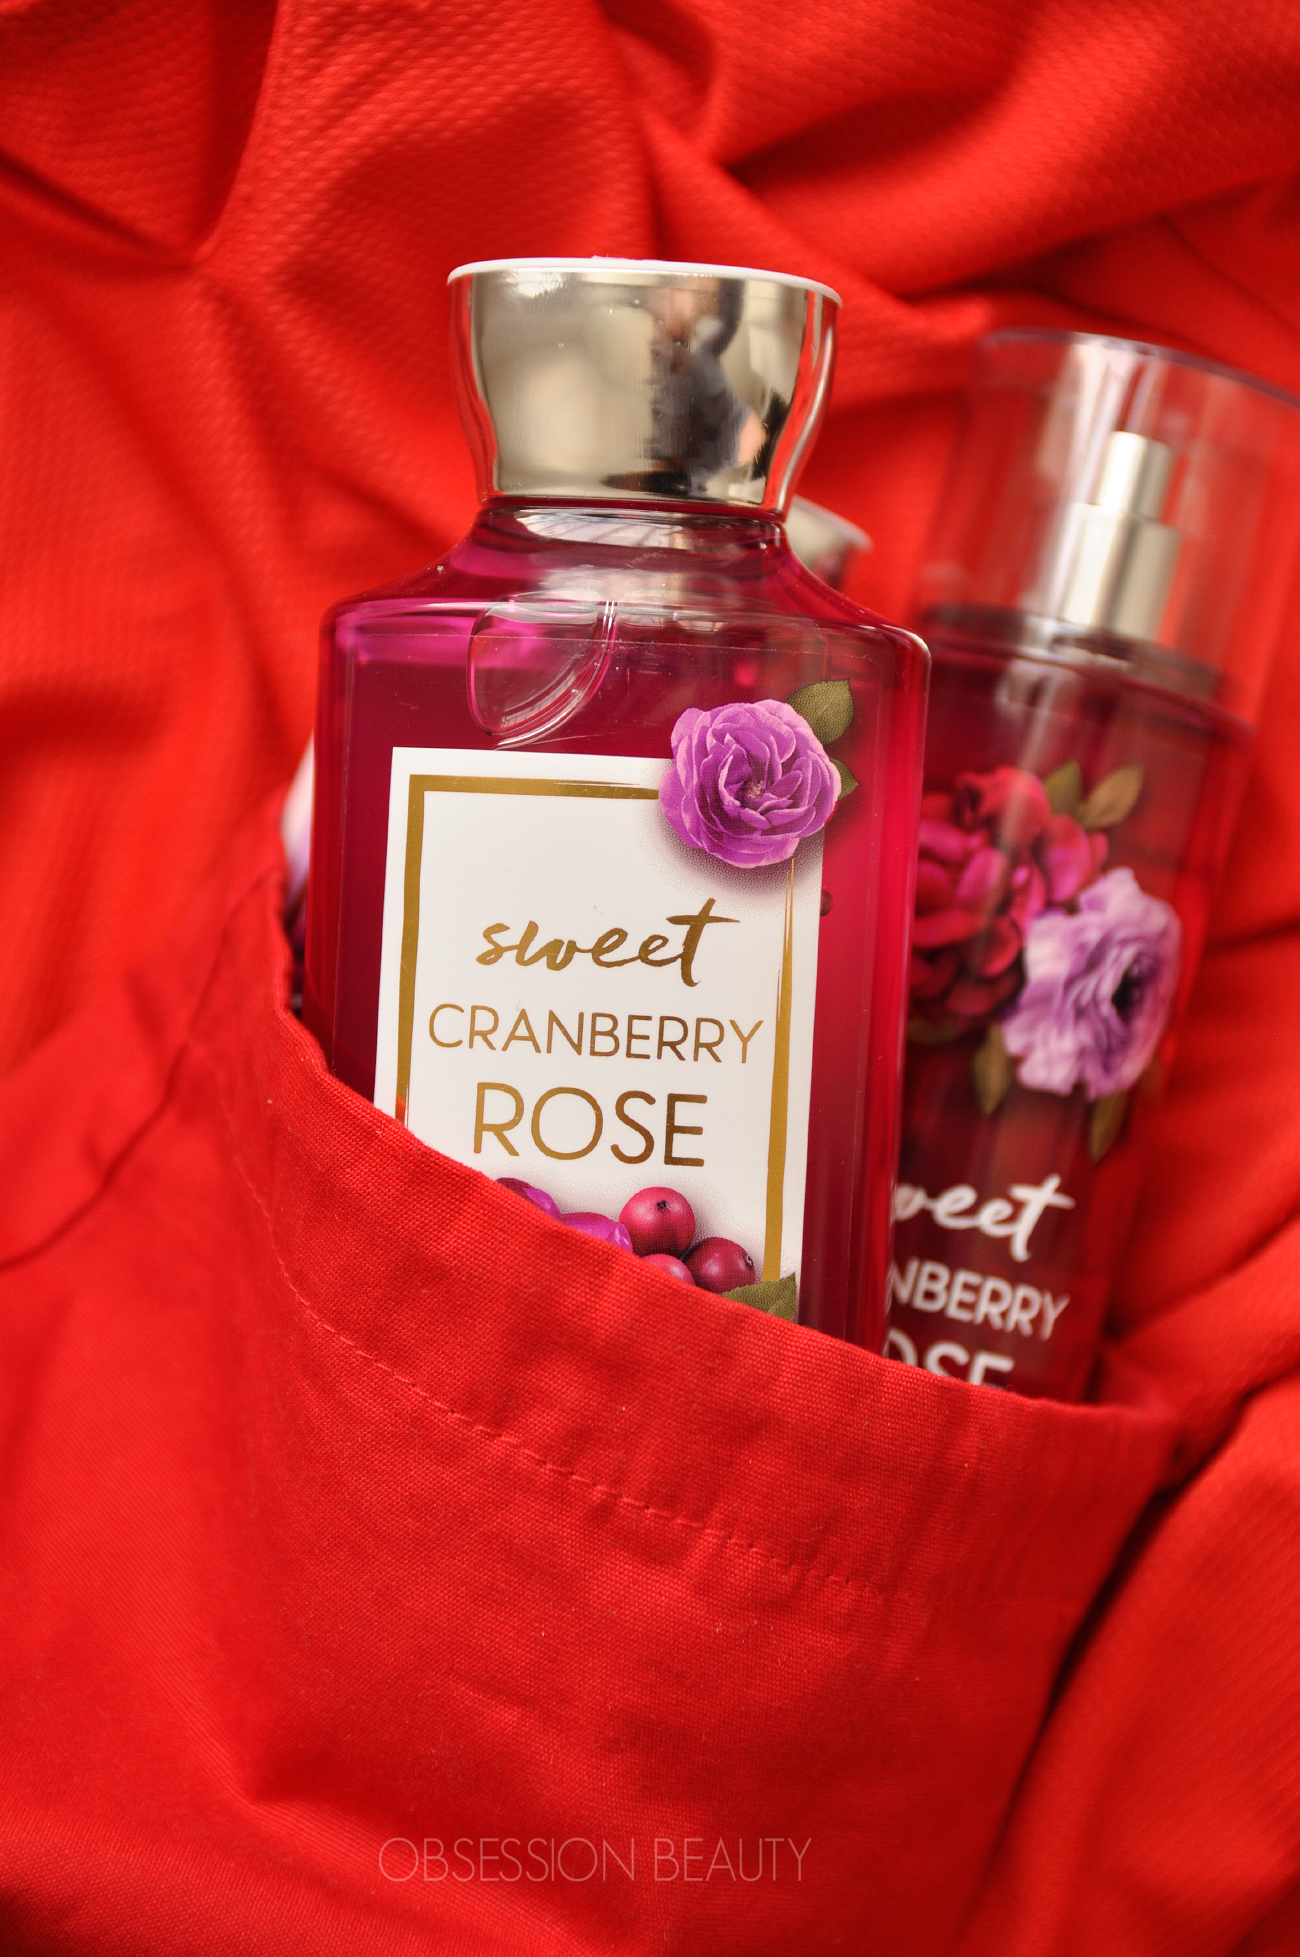 Sweet-Cranberry-Rose-3